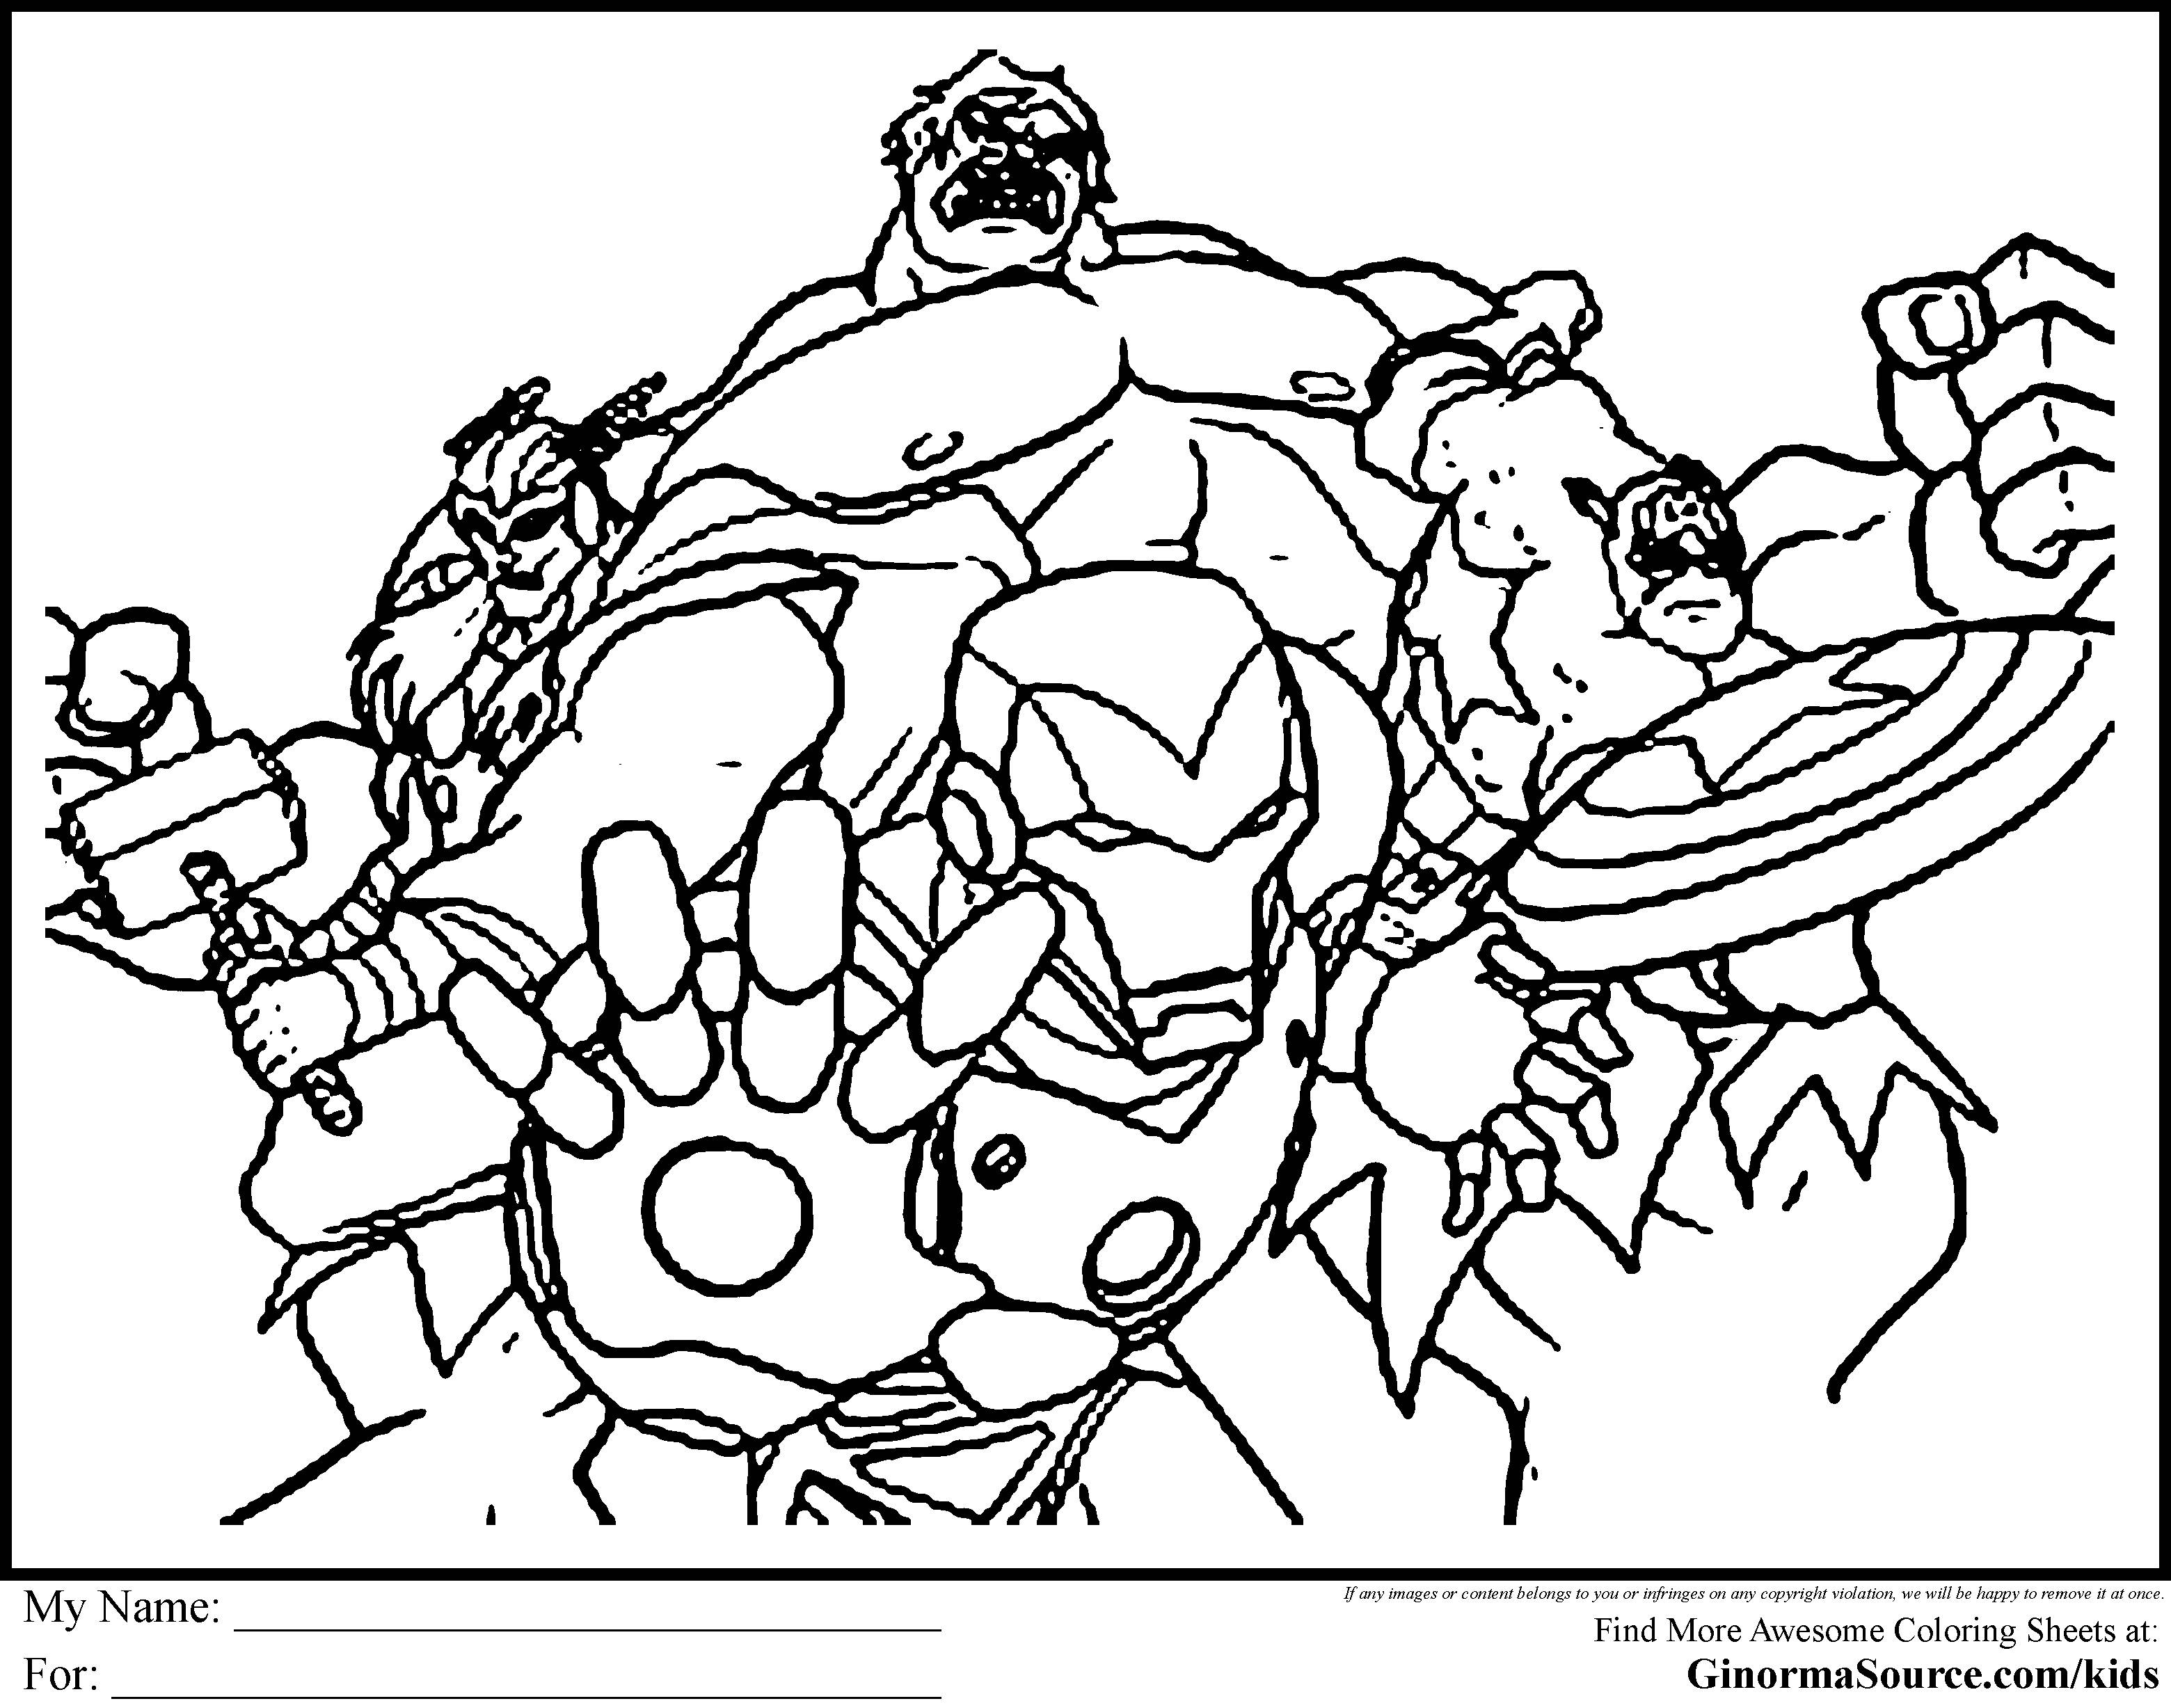 Avengers Coloring Pages To Print Coloring Pages